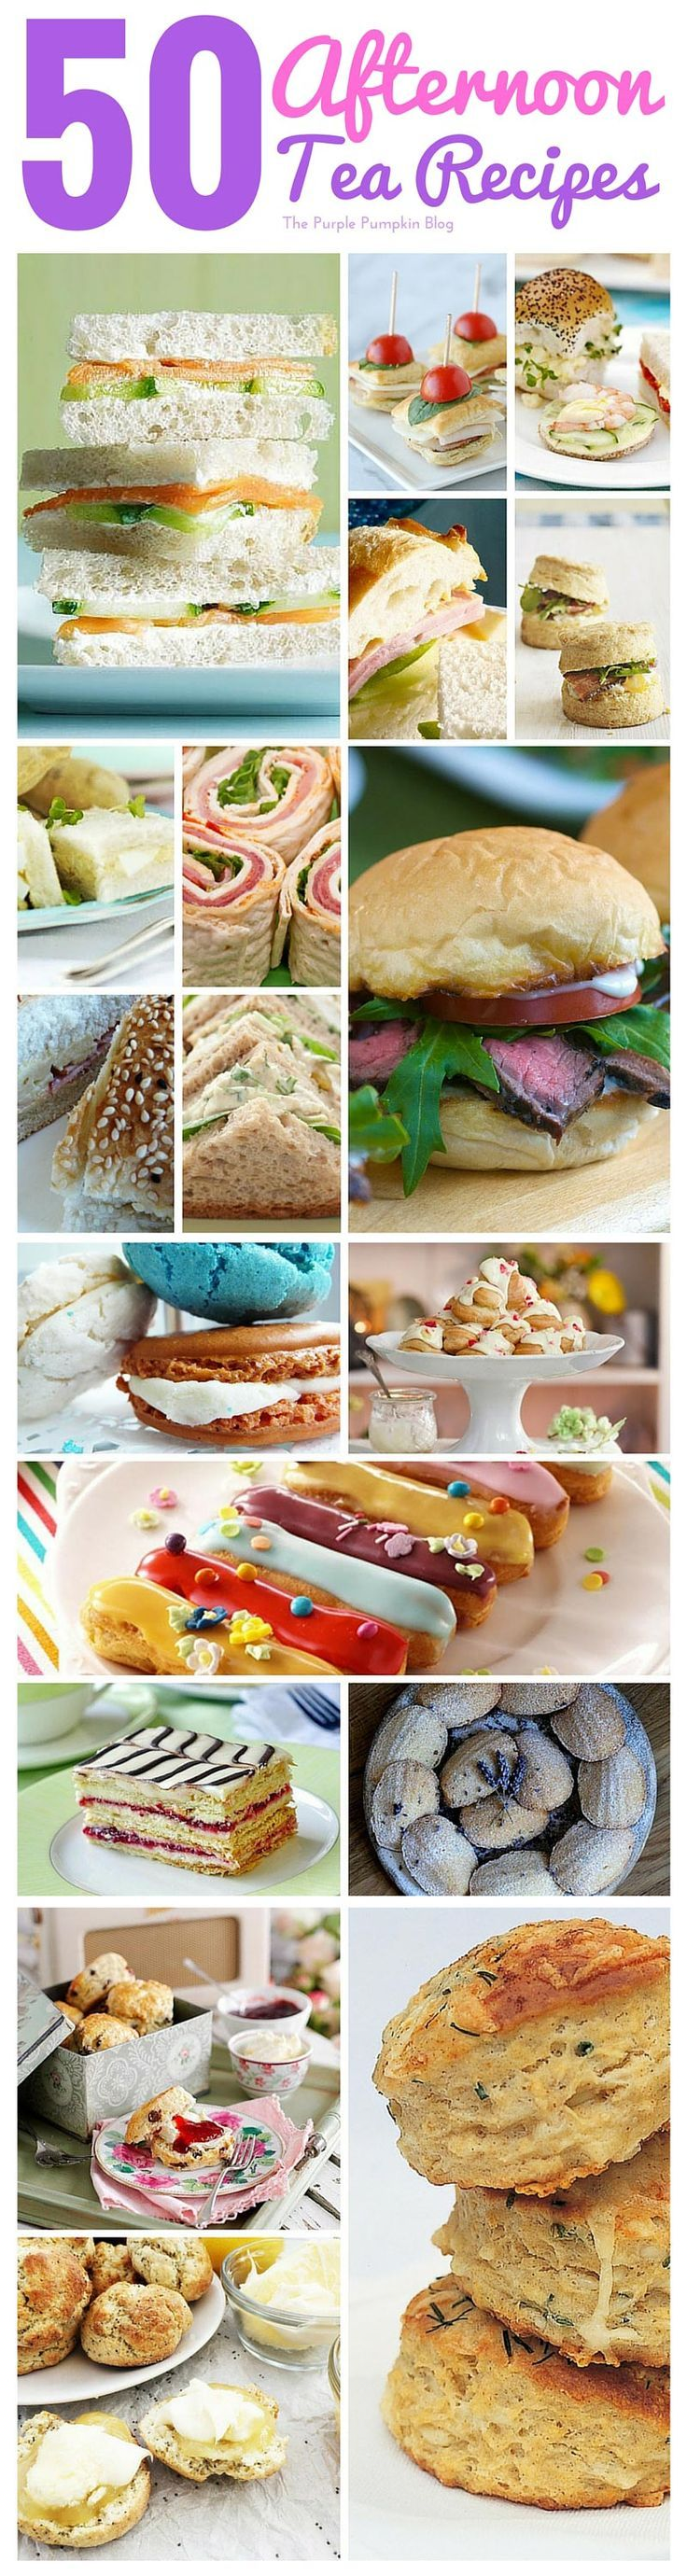 50 Afternoon Tea Recipes - from finger sandwiches, and savoury tarts, to scones, cakes, pastries, and patisserie. All the recipes you will need to host an afternoon tea party!